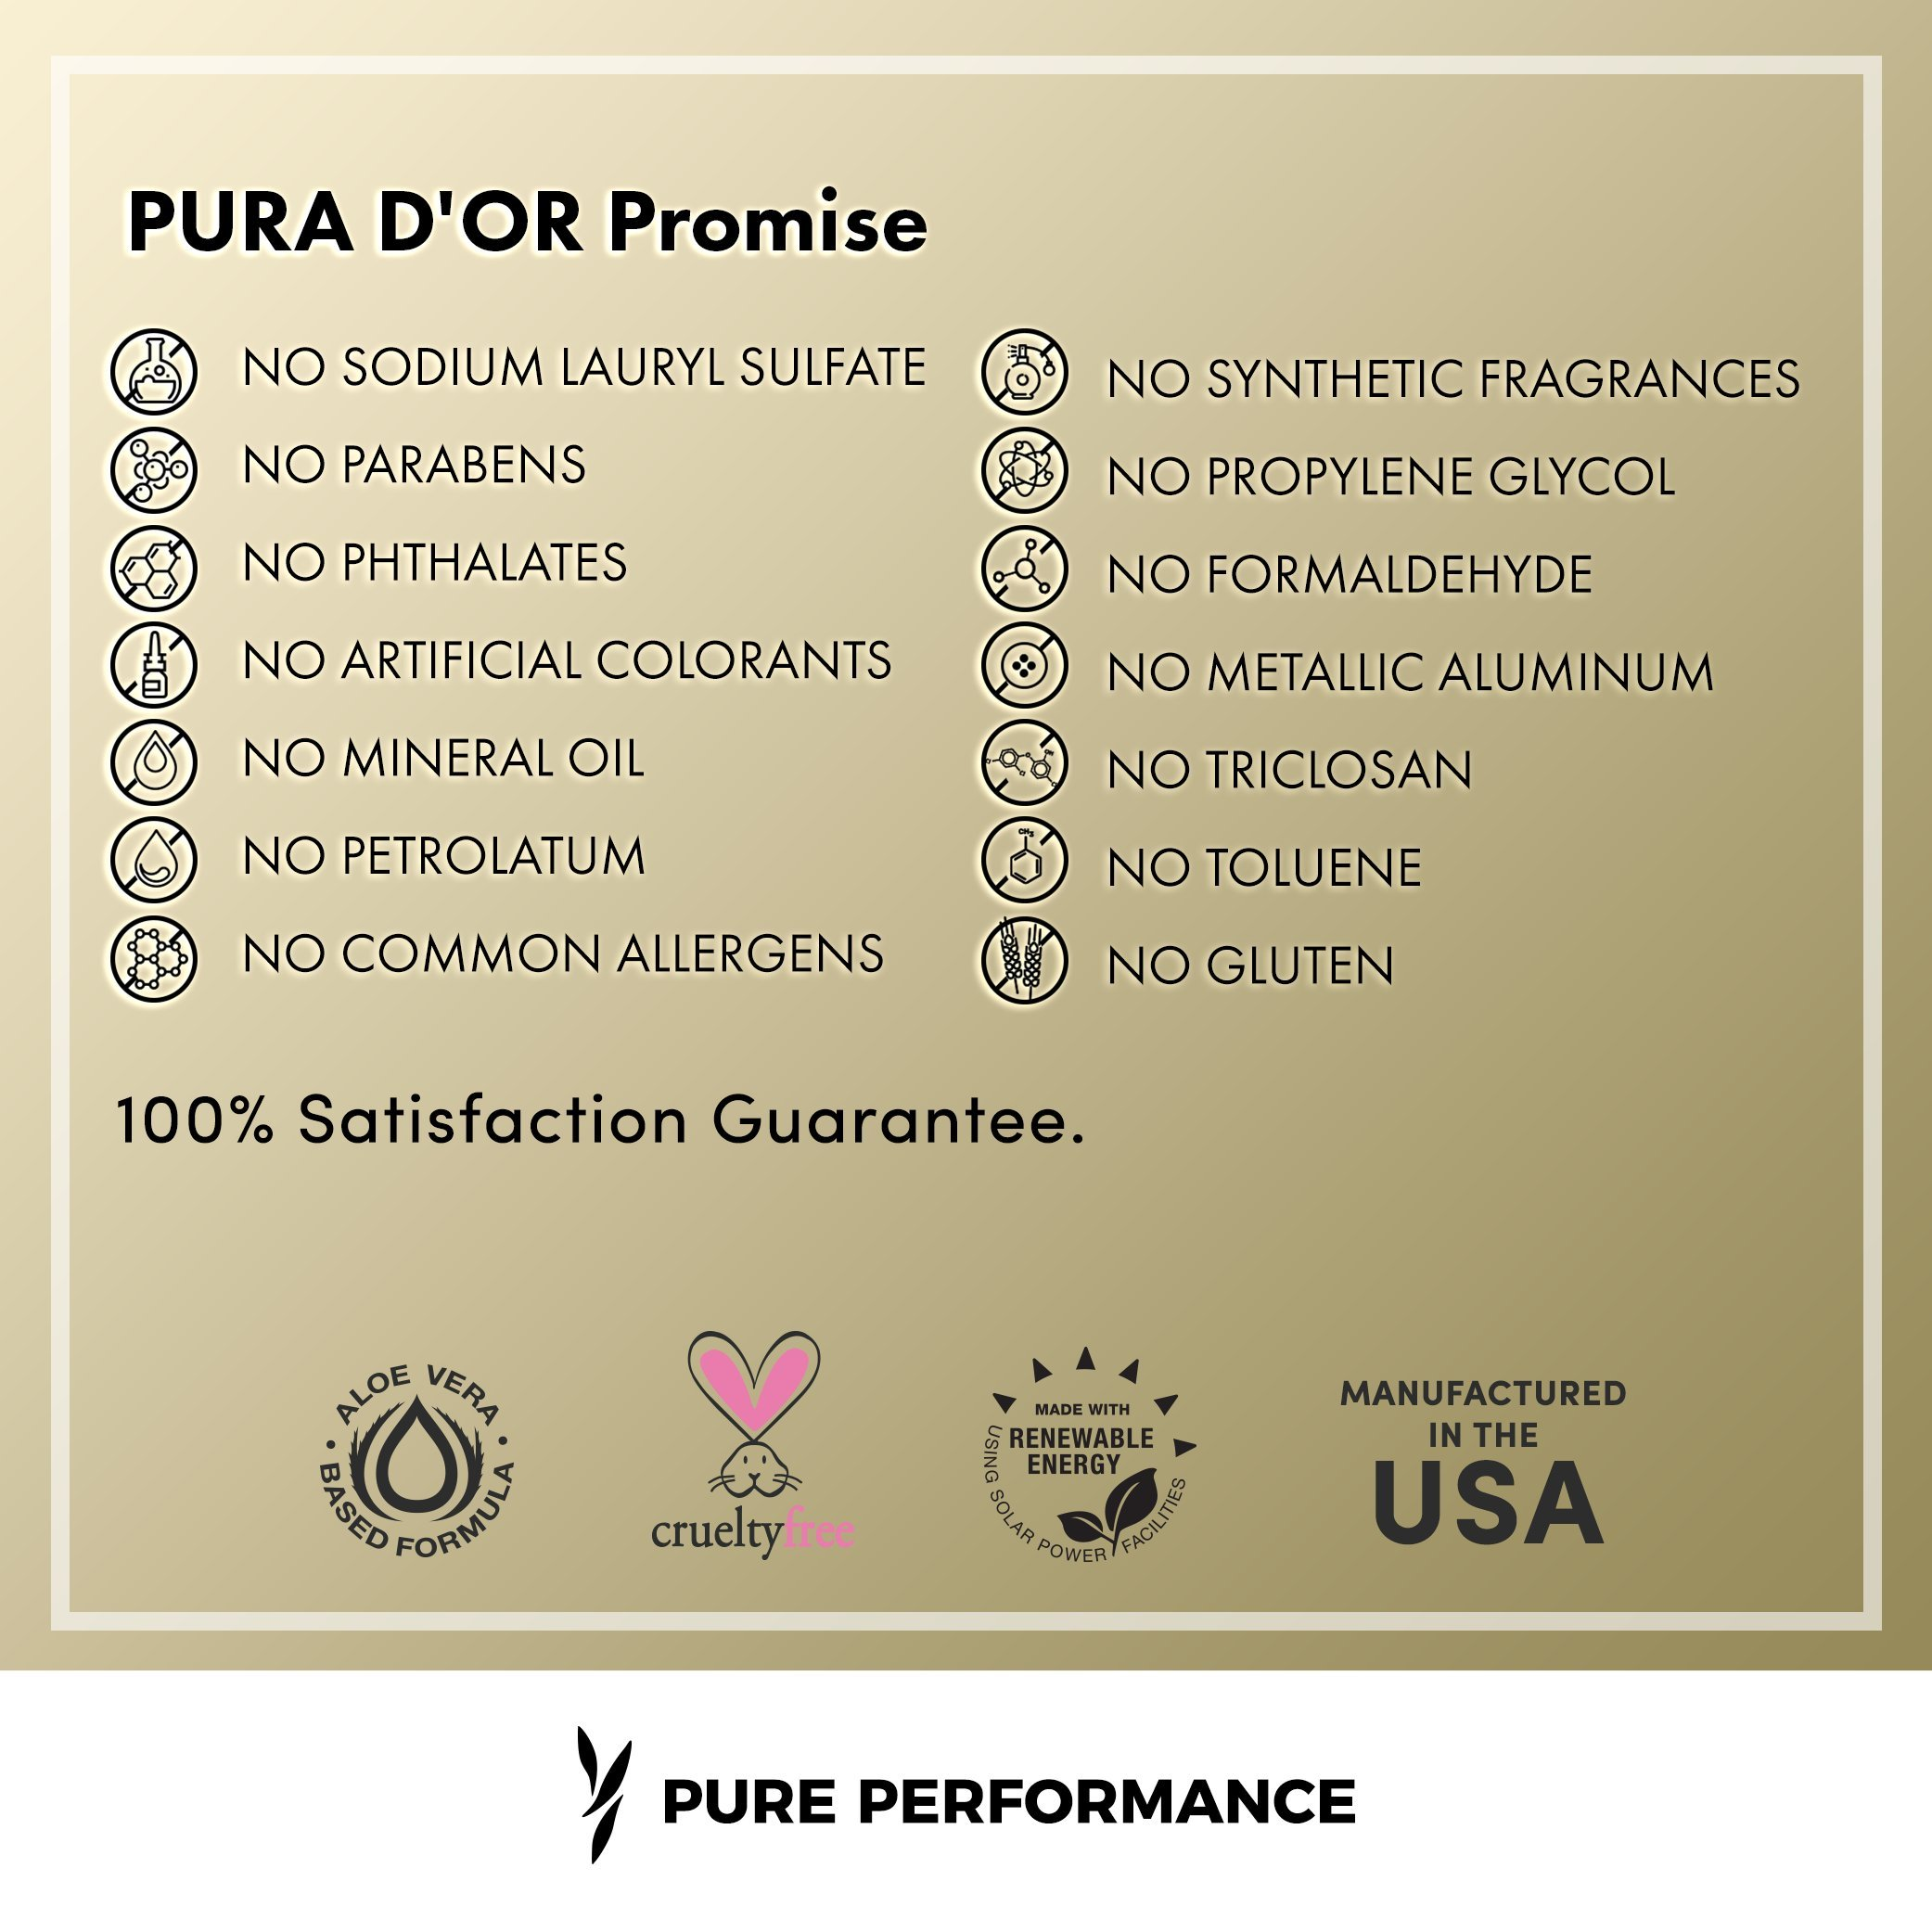 PURA D'OR Original Gold Label Anti-Thinning Shampoo & Deep Moisturizing Conditioner Set, Clinically Tested, Rich in Natural Ingredients, All Hair Types, Men & Women, 16 fl oz (Packaging may vary) by PURA D'OR (Image #4)